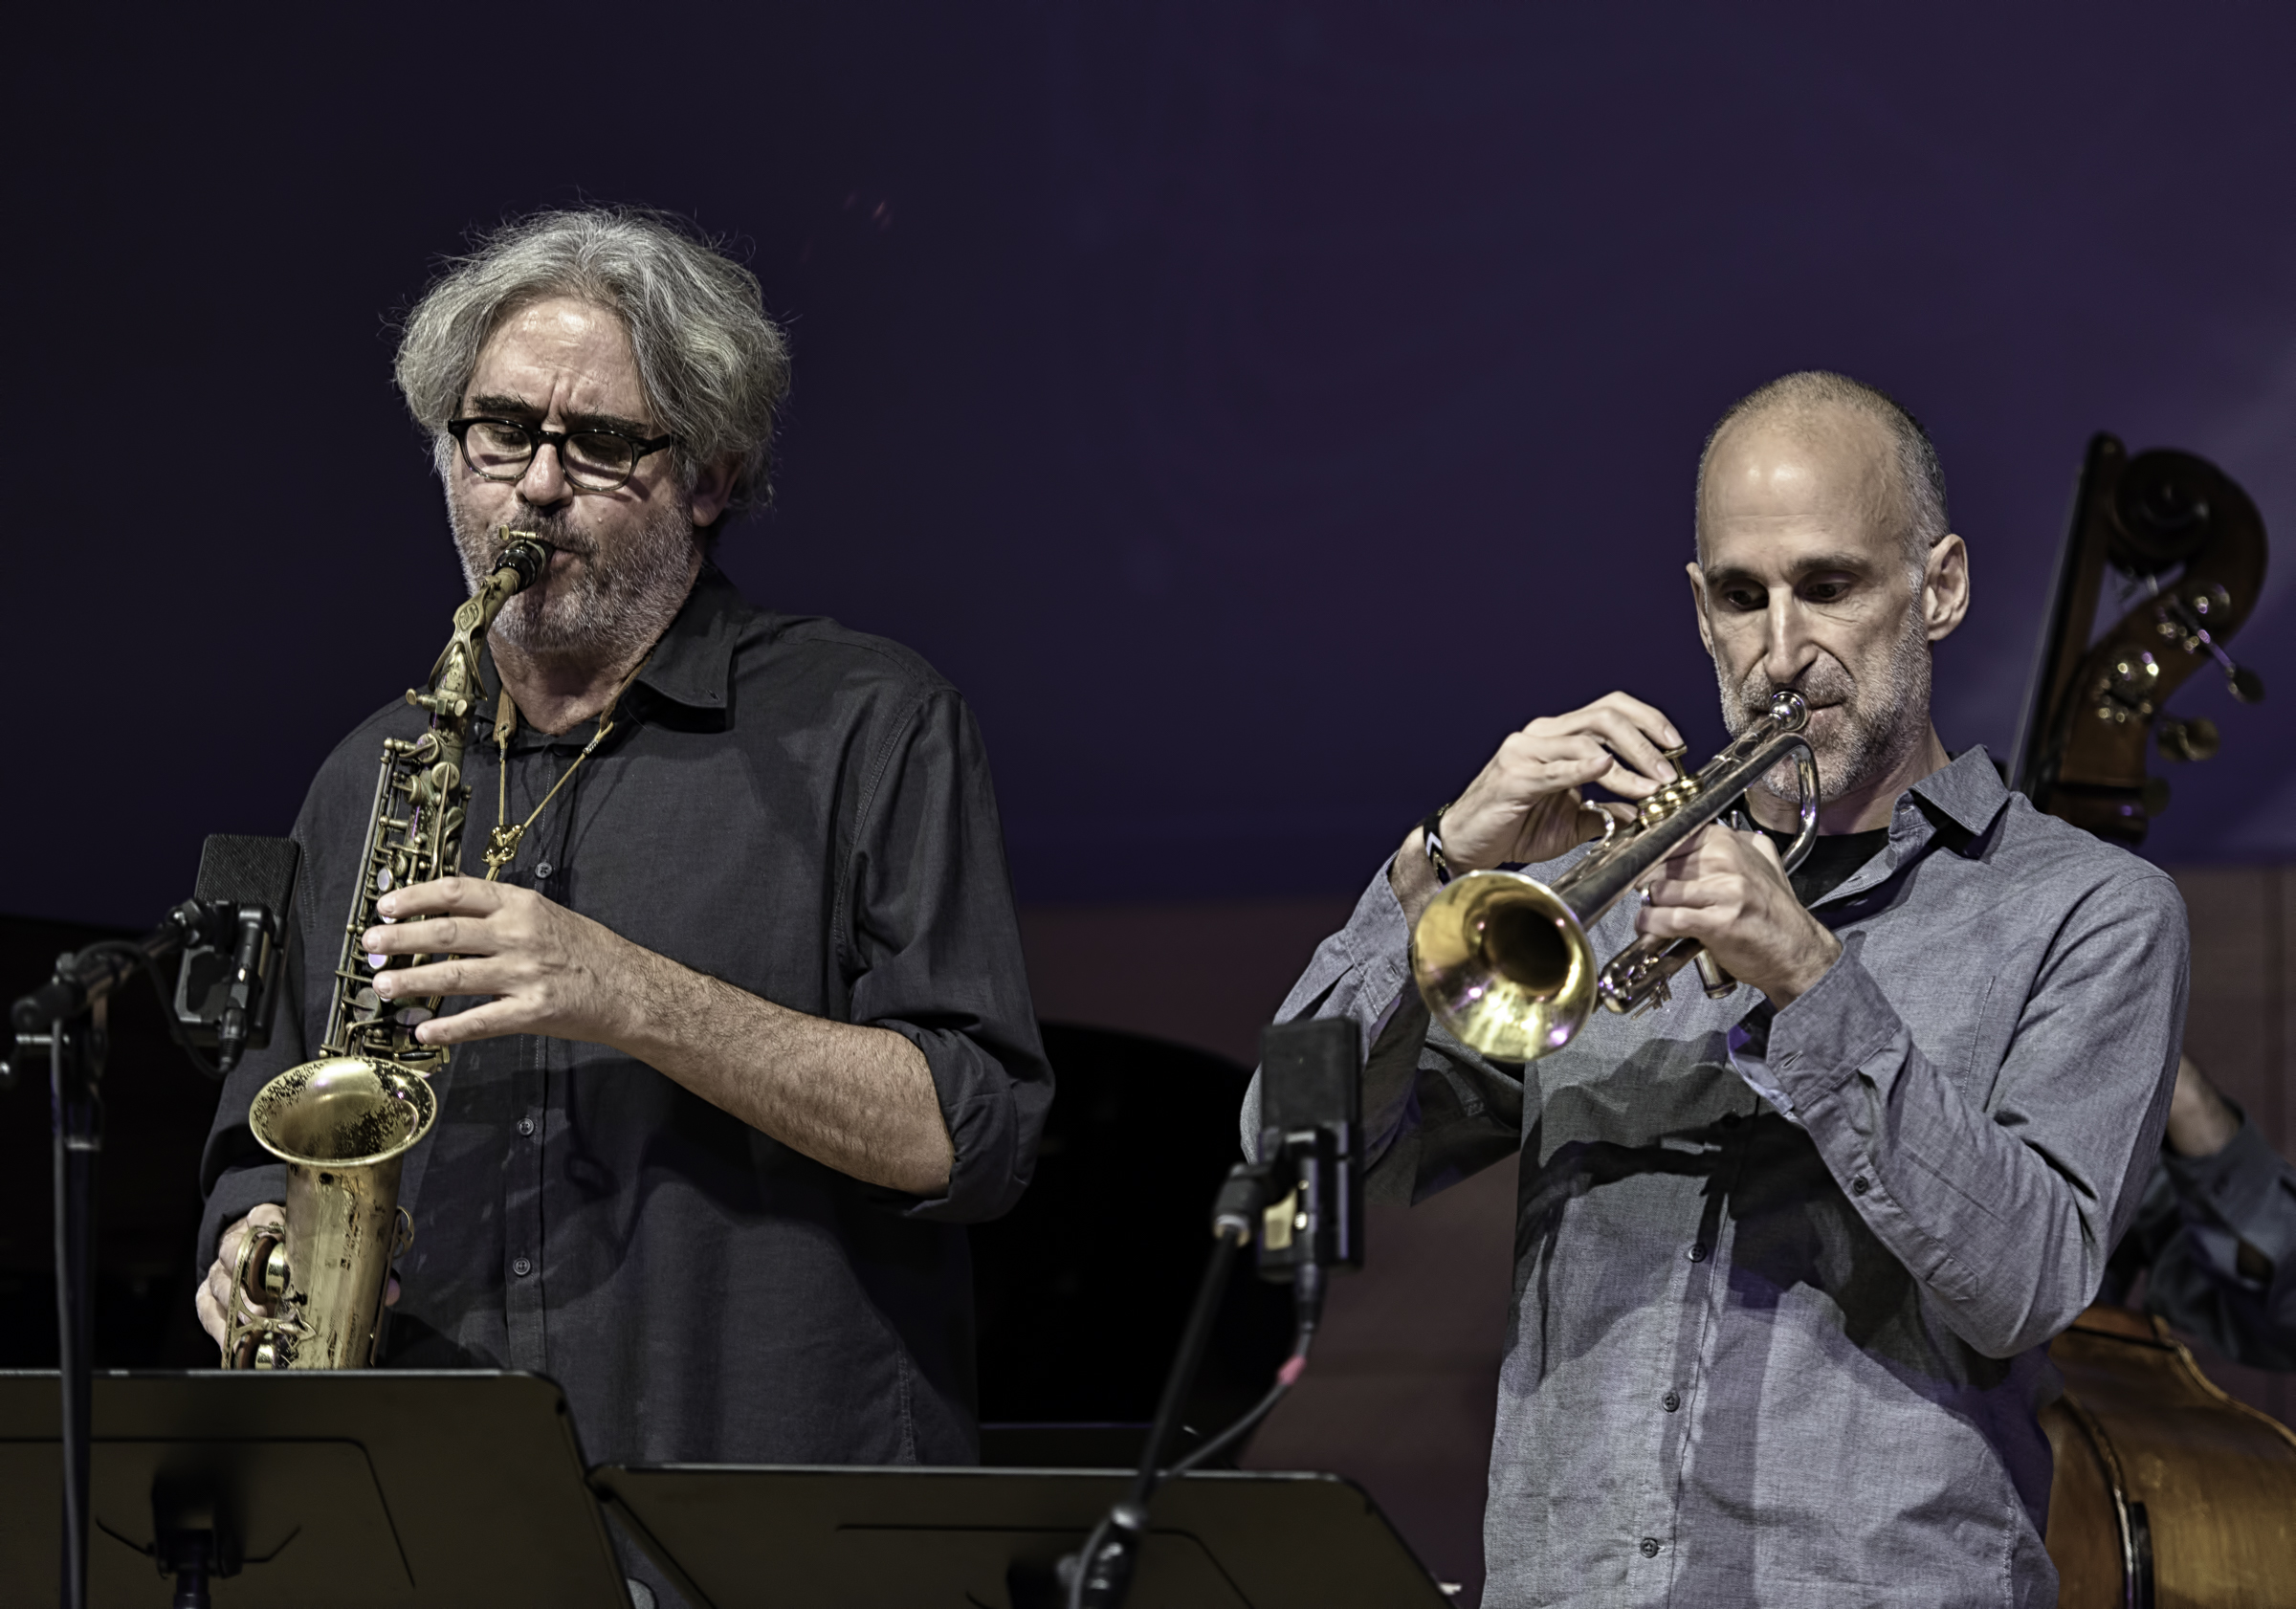 Tim Berne and Ralph Alessi with Sideshow at the NYC Winter Jazzfest 2016